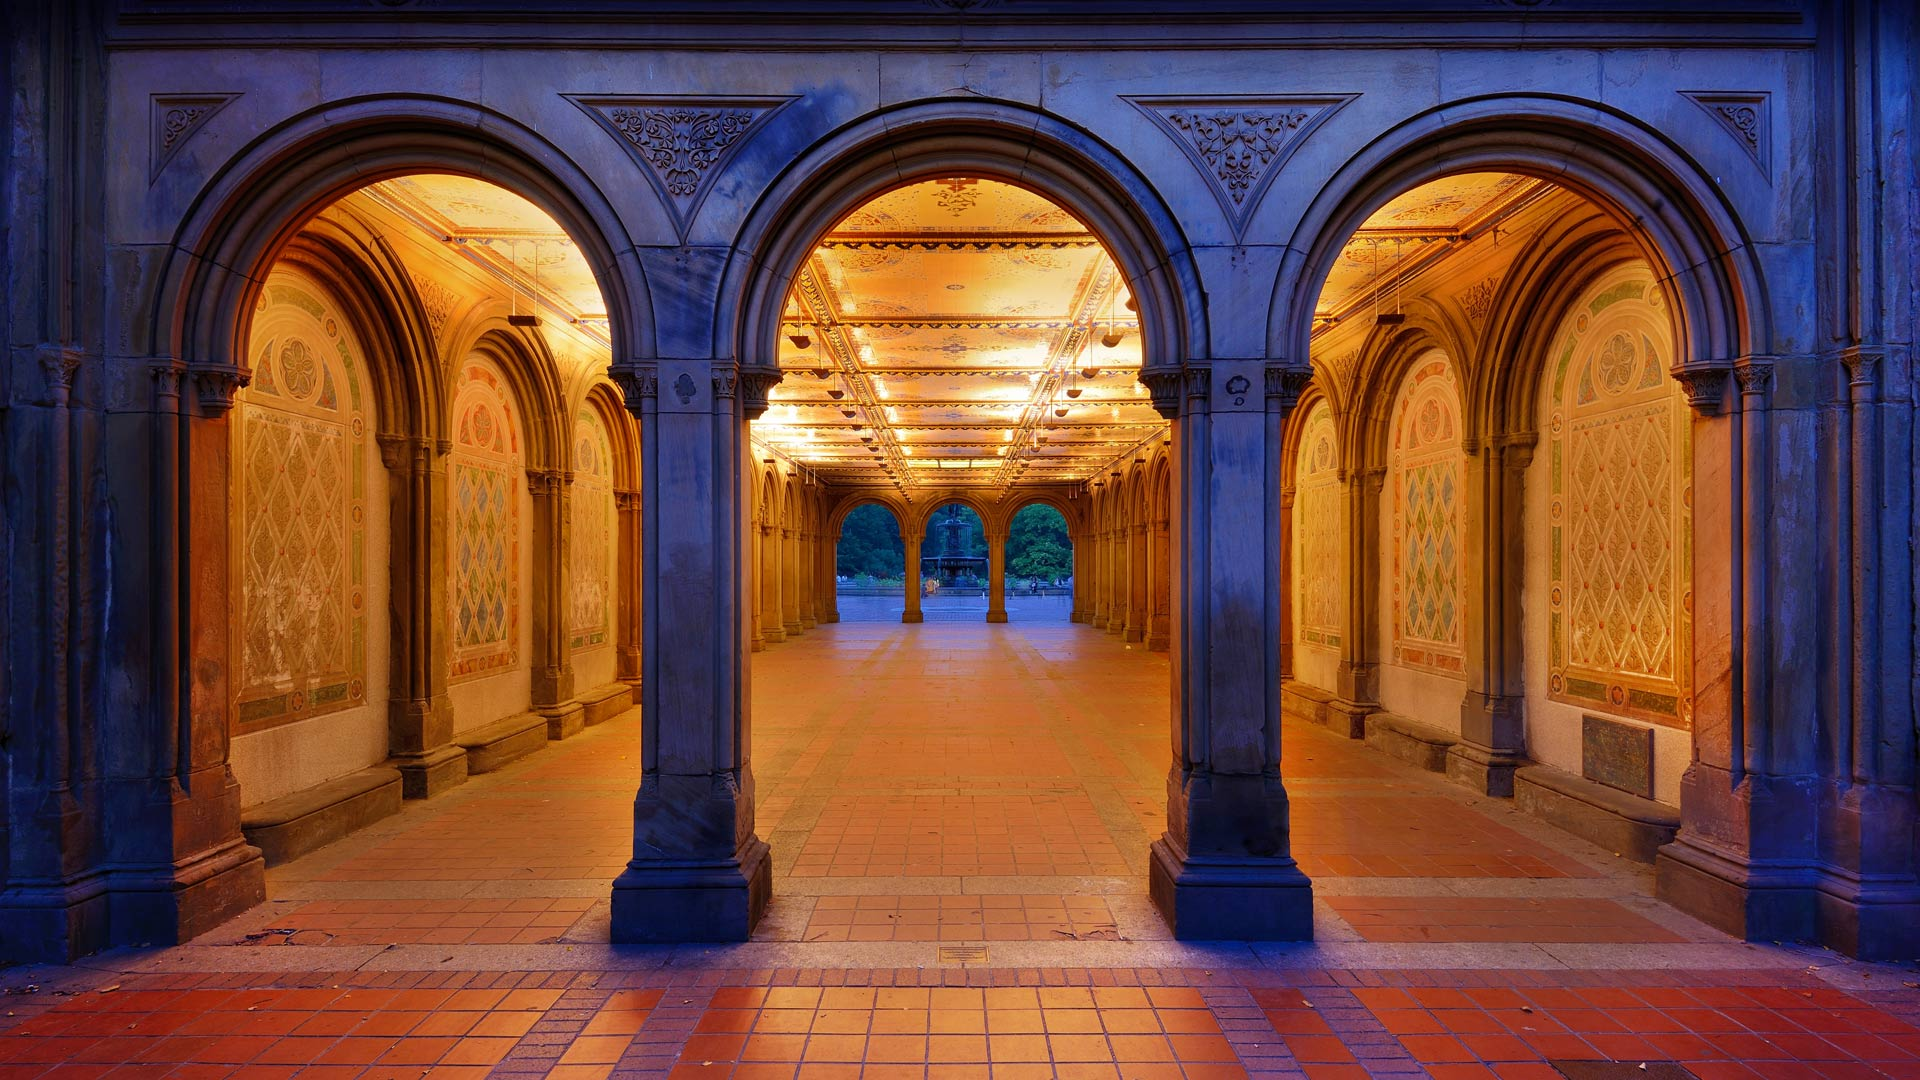 Bethesda Terrace's lower passage in Central Park, New York City (© Sean Pavone/Shutterstock)